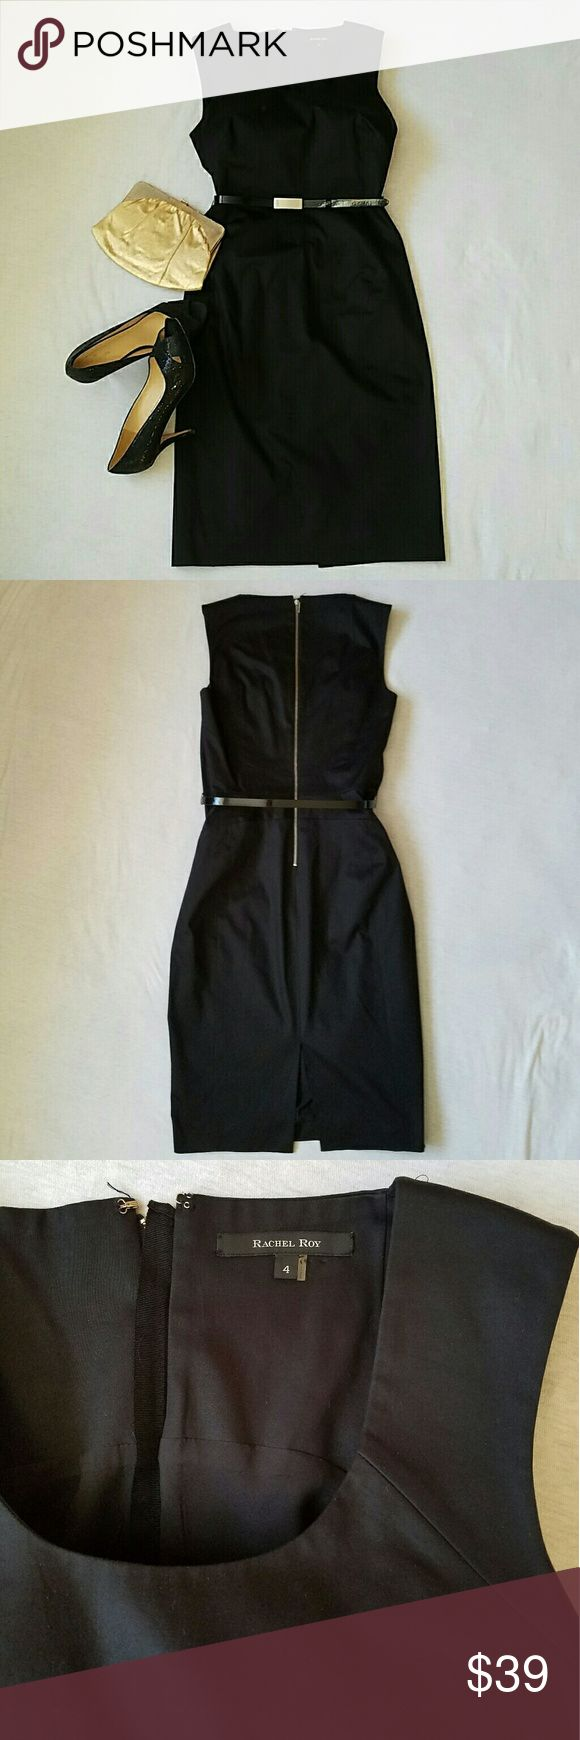 """Rachel Roy LBD  black dress size 4 New without tag.  Beautiful sleeveless dress with a scoop neck. There are a few small scratches on the belt buckle  (see picture), no other flaws. The dress has a silver colored back zipper and a shiny black belt with the initials """"RR"""" on the buckle.  Material has a slight stretch, 98% cotton, 2% spandex. Total length ca. 40.5 inches, skirt length ca. 24.75 inches, waist ca 28 inches, chest armpit to armpit ca. 17 inches. Rachel Roy Dresses"""